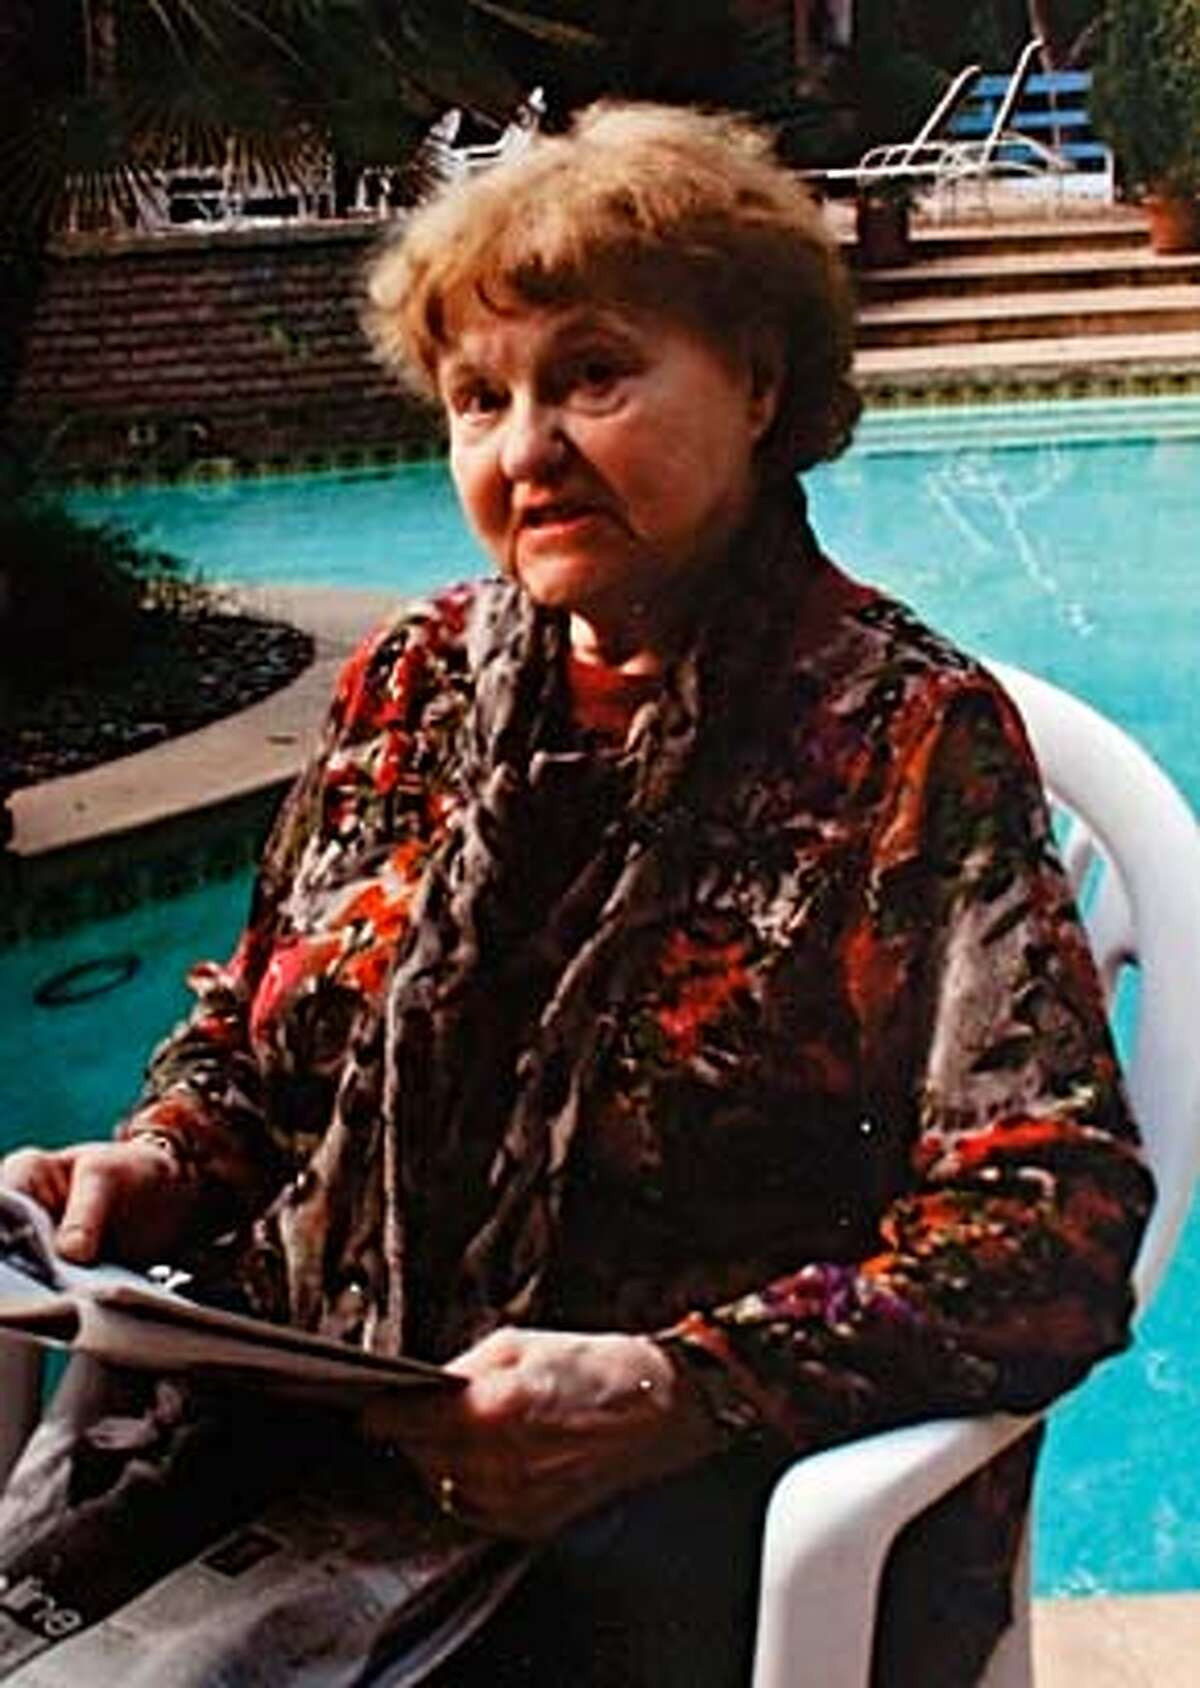 NAZI20_019_KW_.jpg On Tuesday September 19, 2006 a copy photo of a December 24, 2005 Christmas family snap shot of Elfriede Rinkel taken in Los Angeles. According to family members, Rinklel immigrated from Germany to the United states in 1959 and lived in San Francisco until she was deported back to Germany at 83-years-old after federal officials uncovered her past as a Nazi concentration camp guard. Her family claims they never knew anything about her past and believed she worked for a furrier in Germany during the war. Handout ** cq